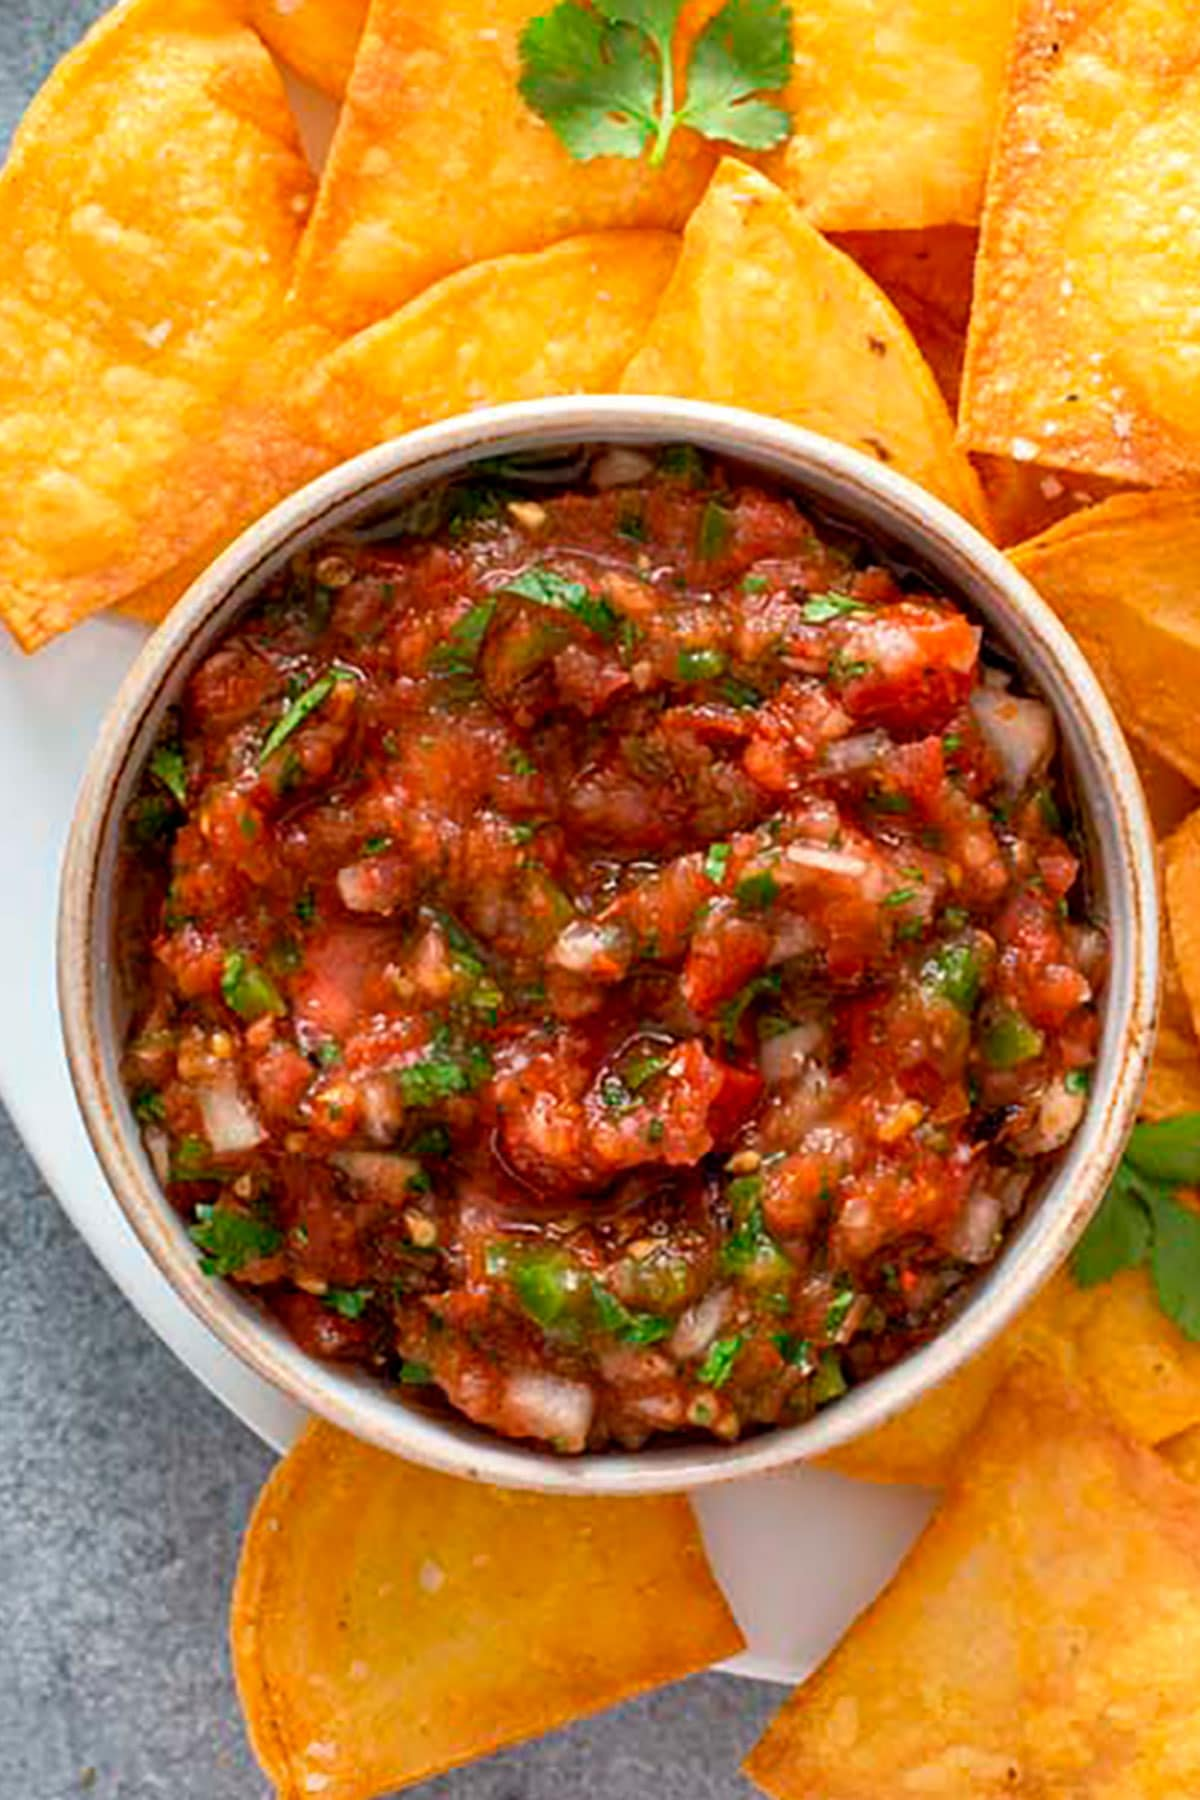 Chips and salsa on a white plate